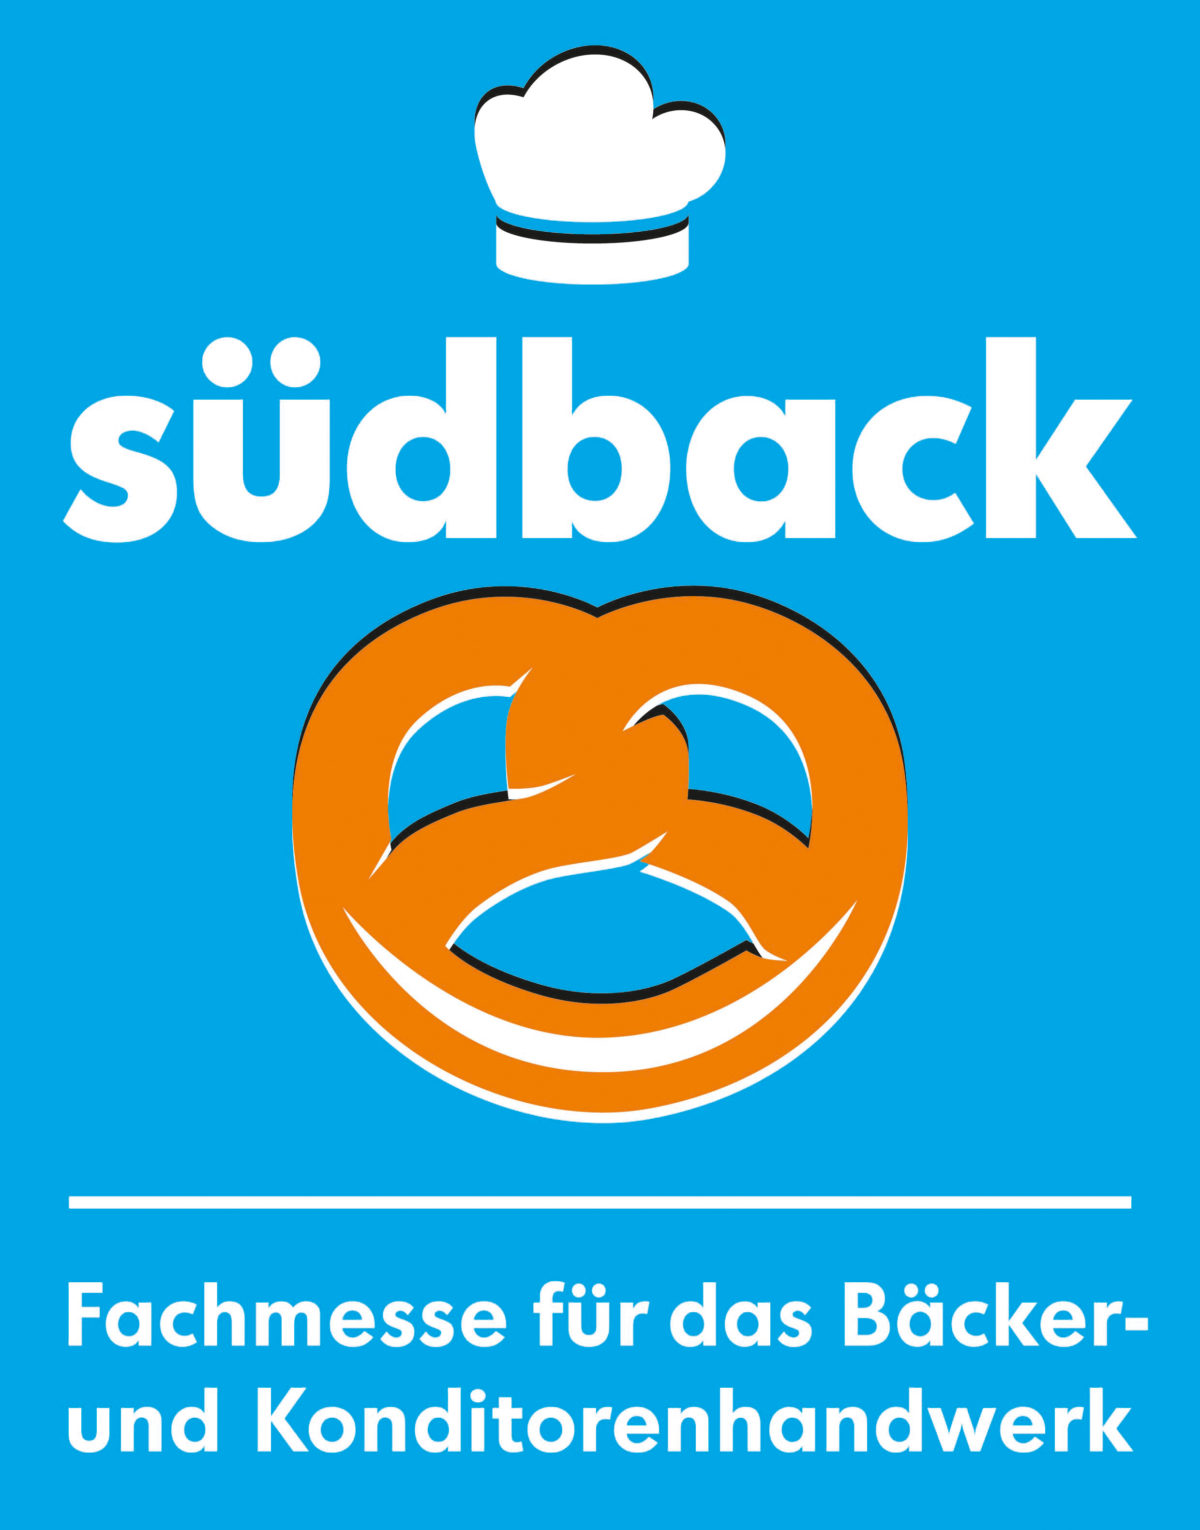 Trade fair südback - September 21th to 24th 2019